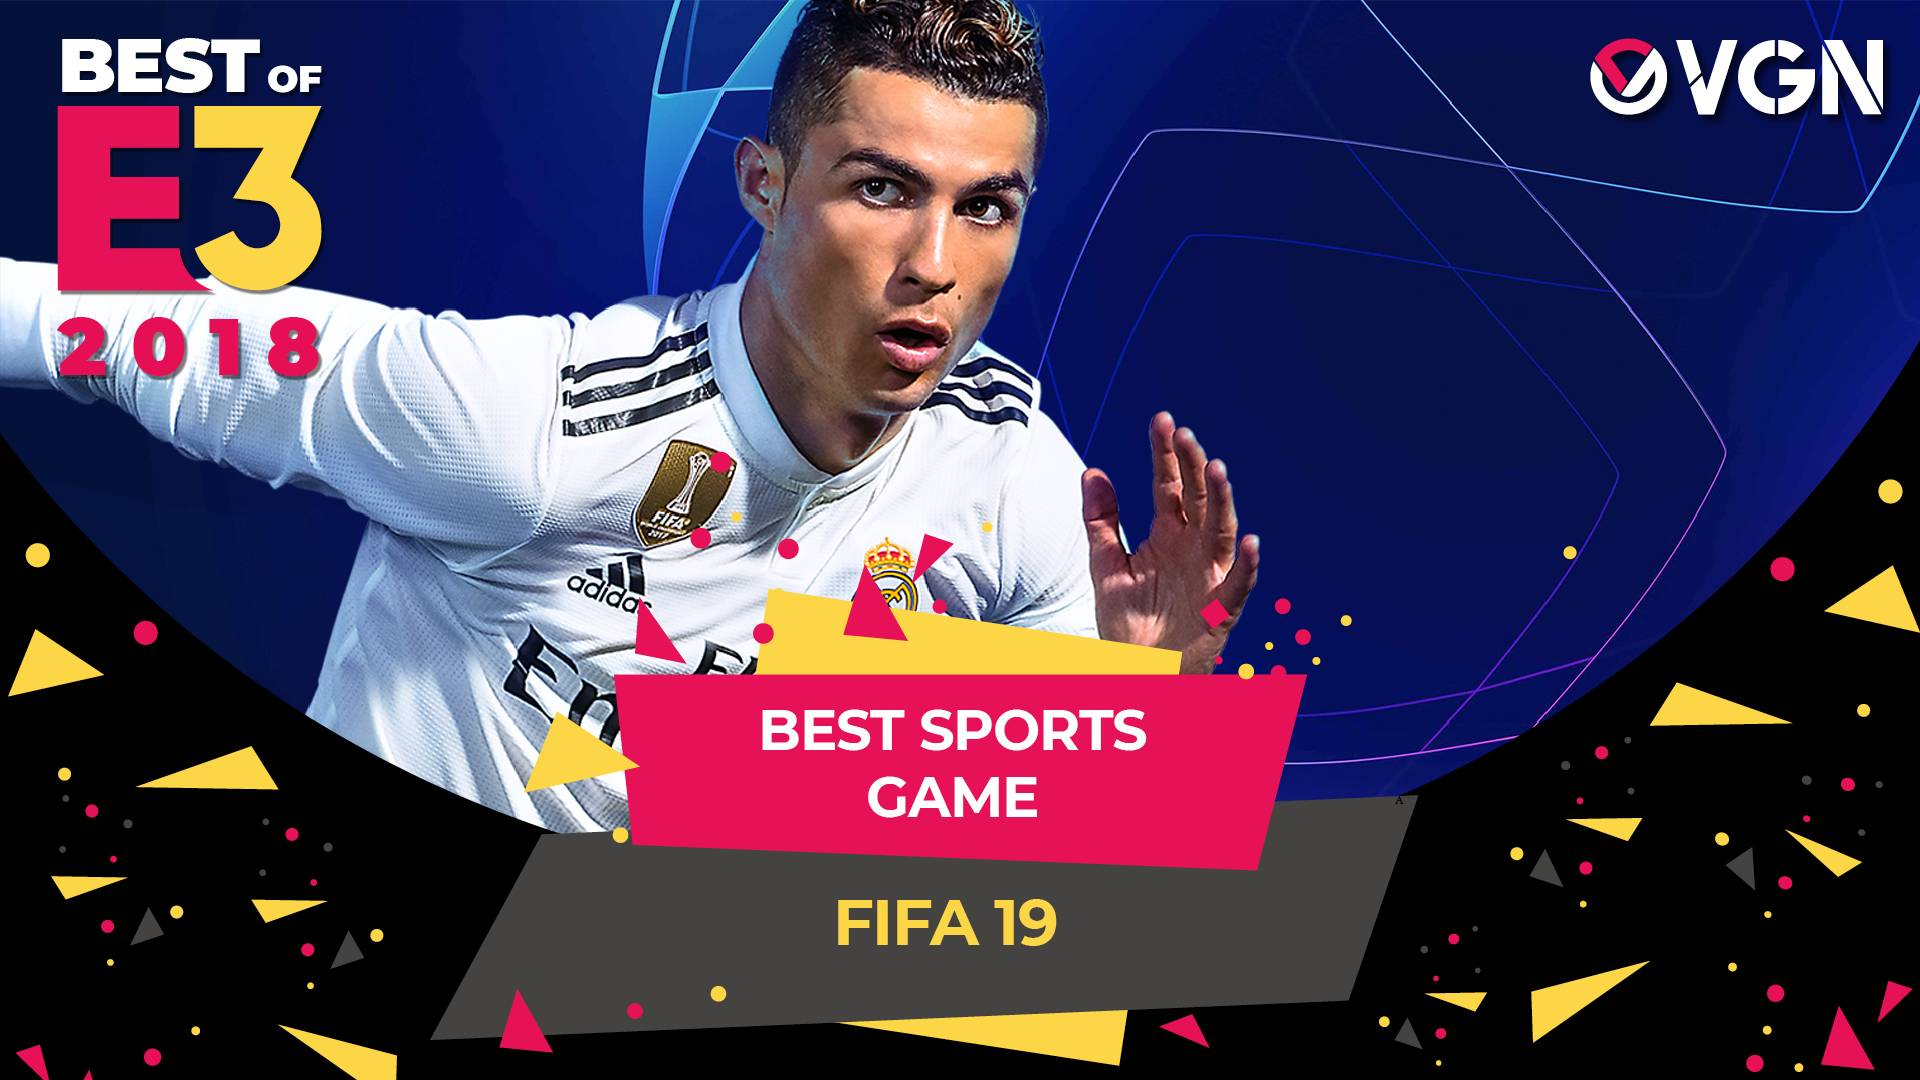 E3 2018 - Best Sports Game - FIFA 19